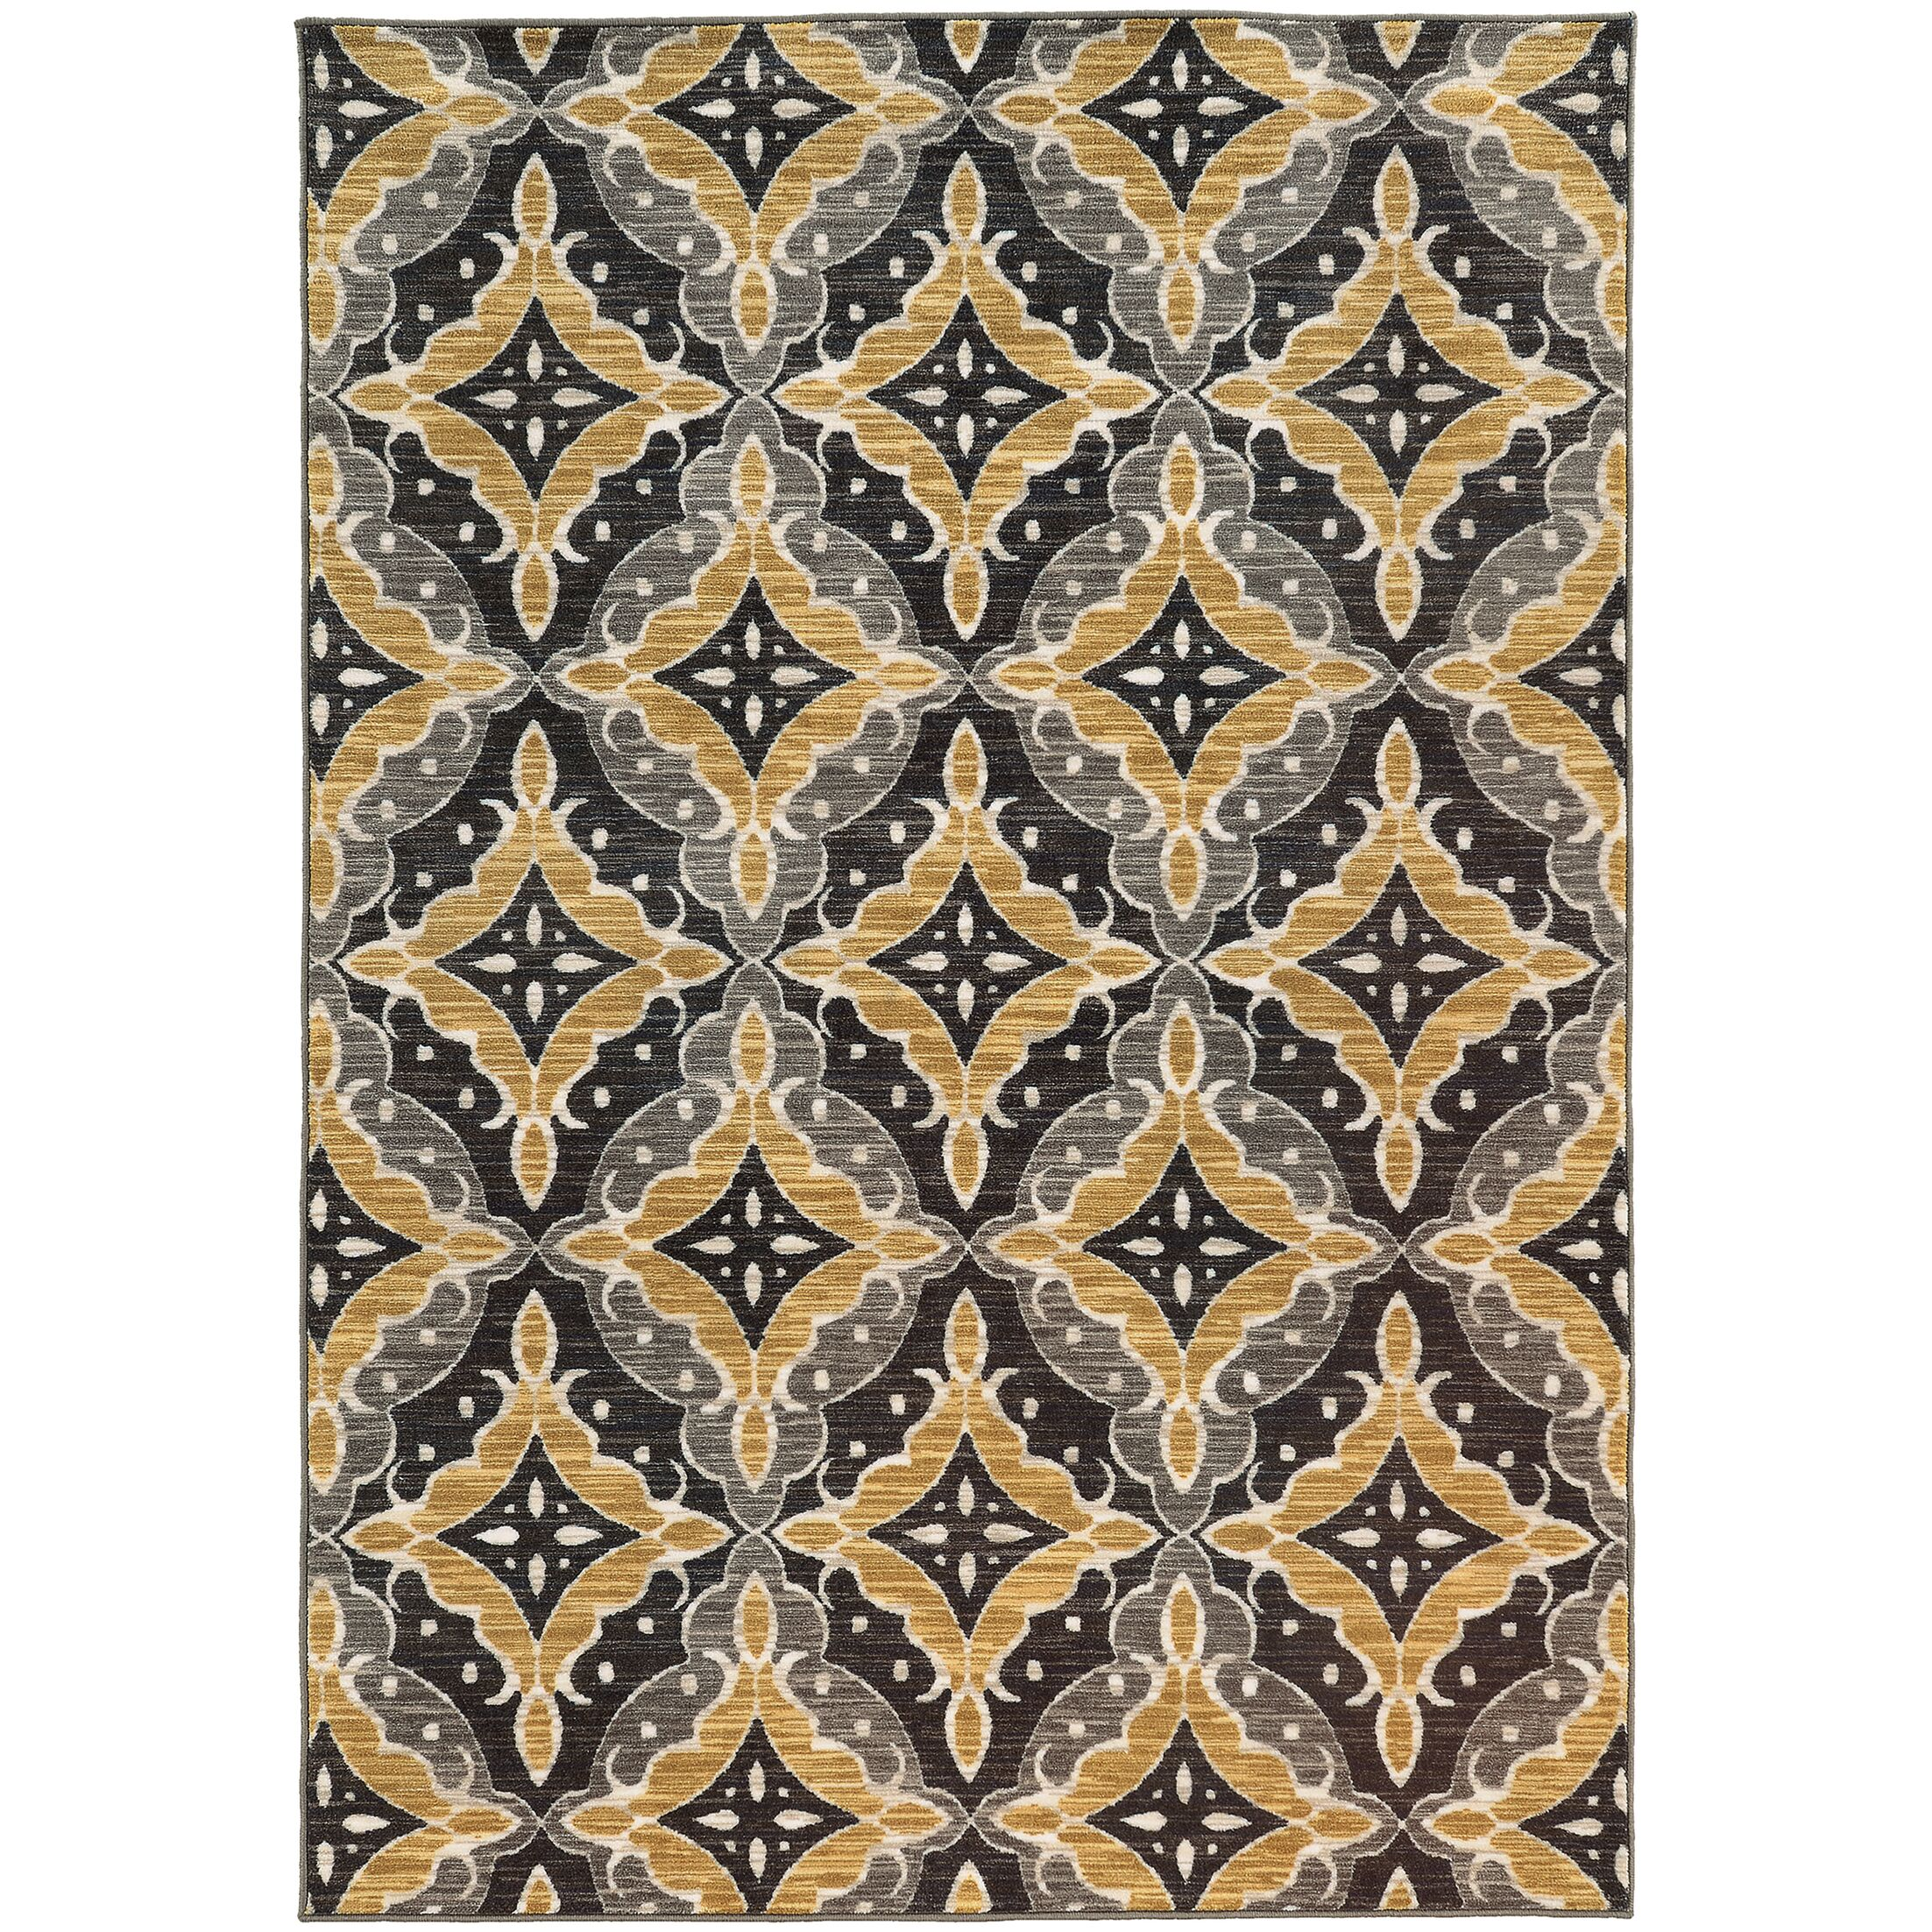 Fairborn Floral Charcoal/Gold Area Rug Rug Size: Rectangle 6'7